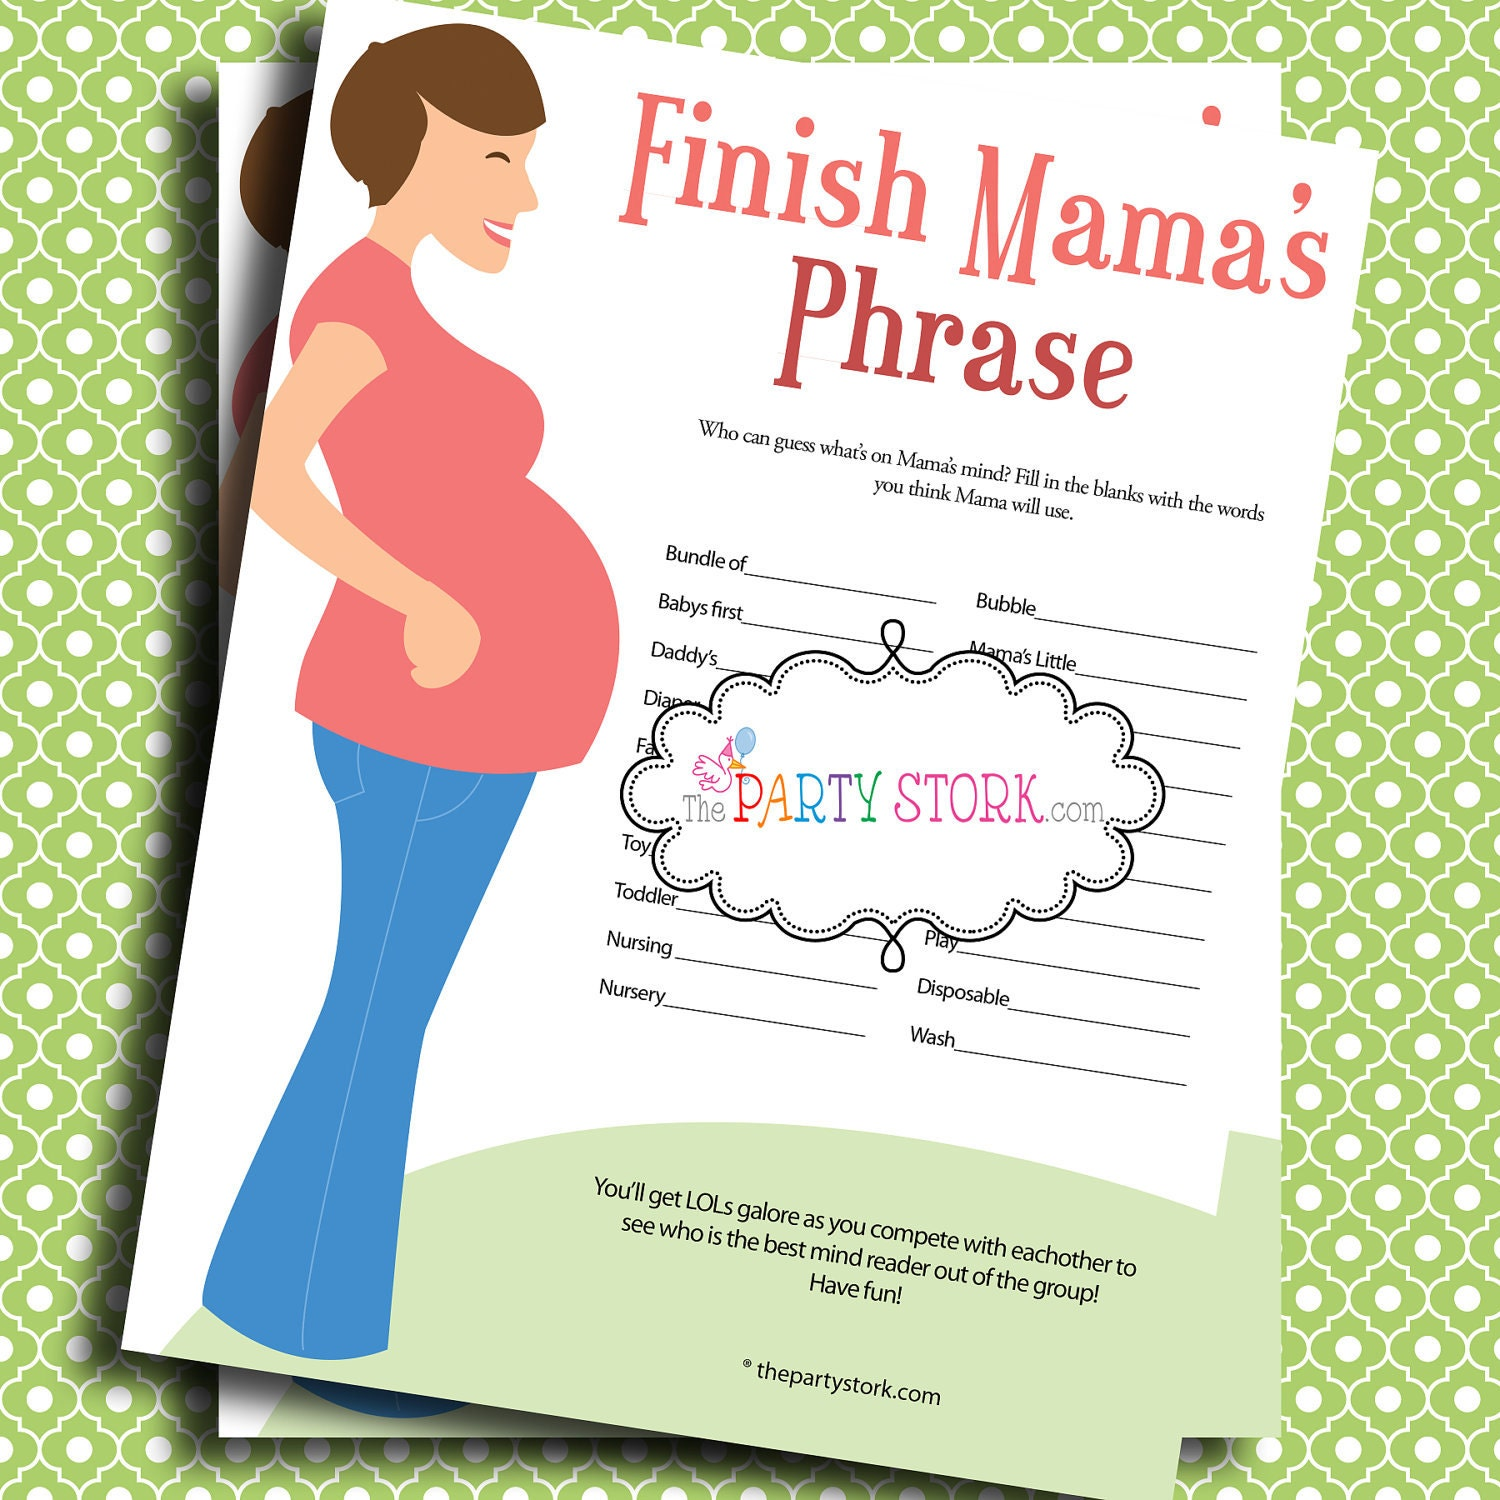 Games, Finish Mama's (Mommy's) Phrase, PRINTABLE, Many Unique Game